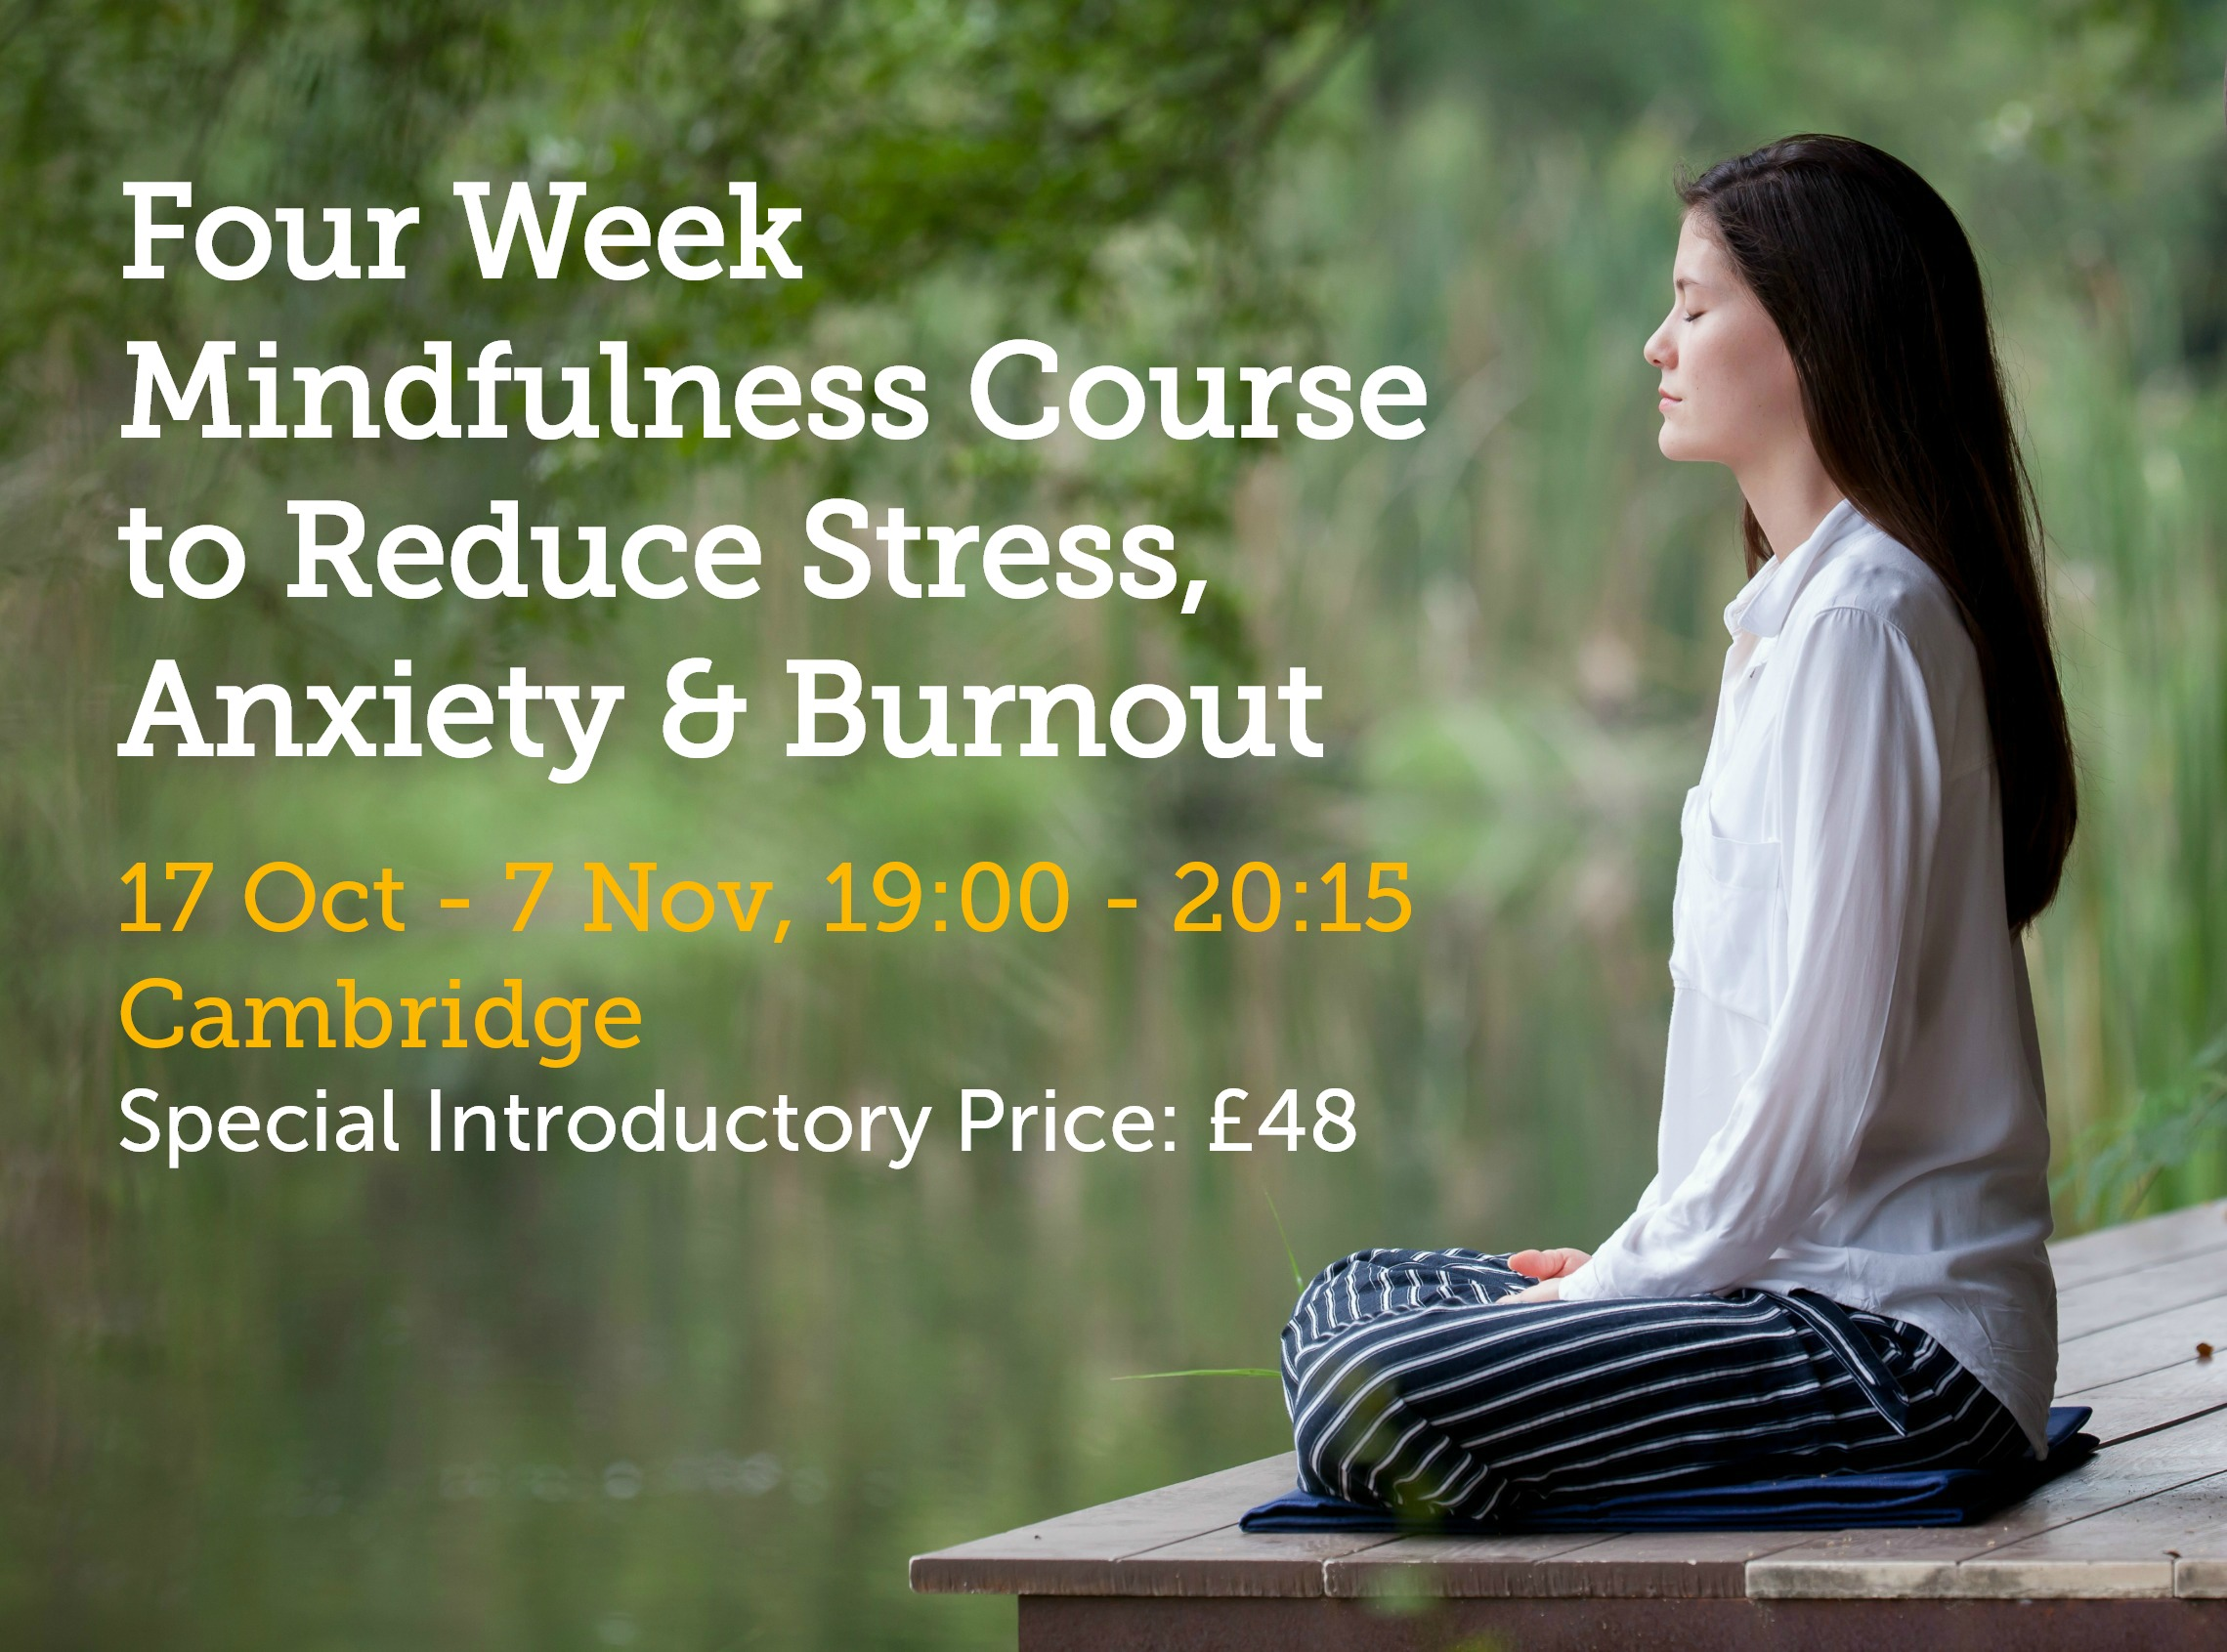 Mindfulness 4 week course eventbrite £48 photo The Rising Network